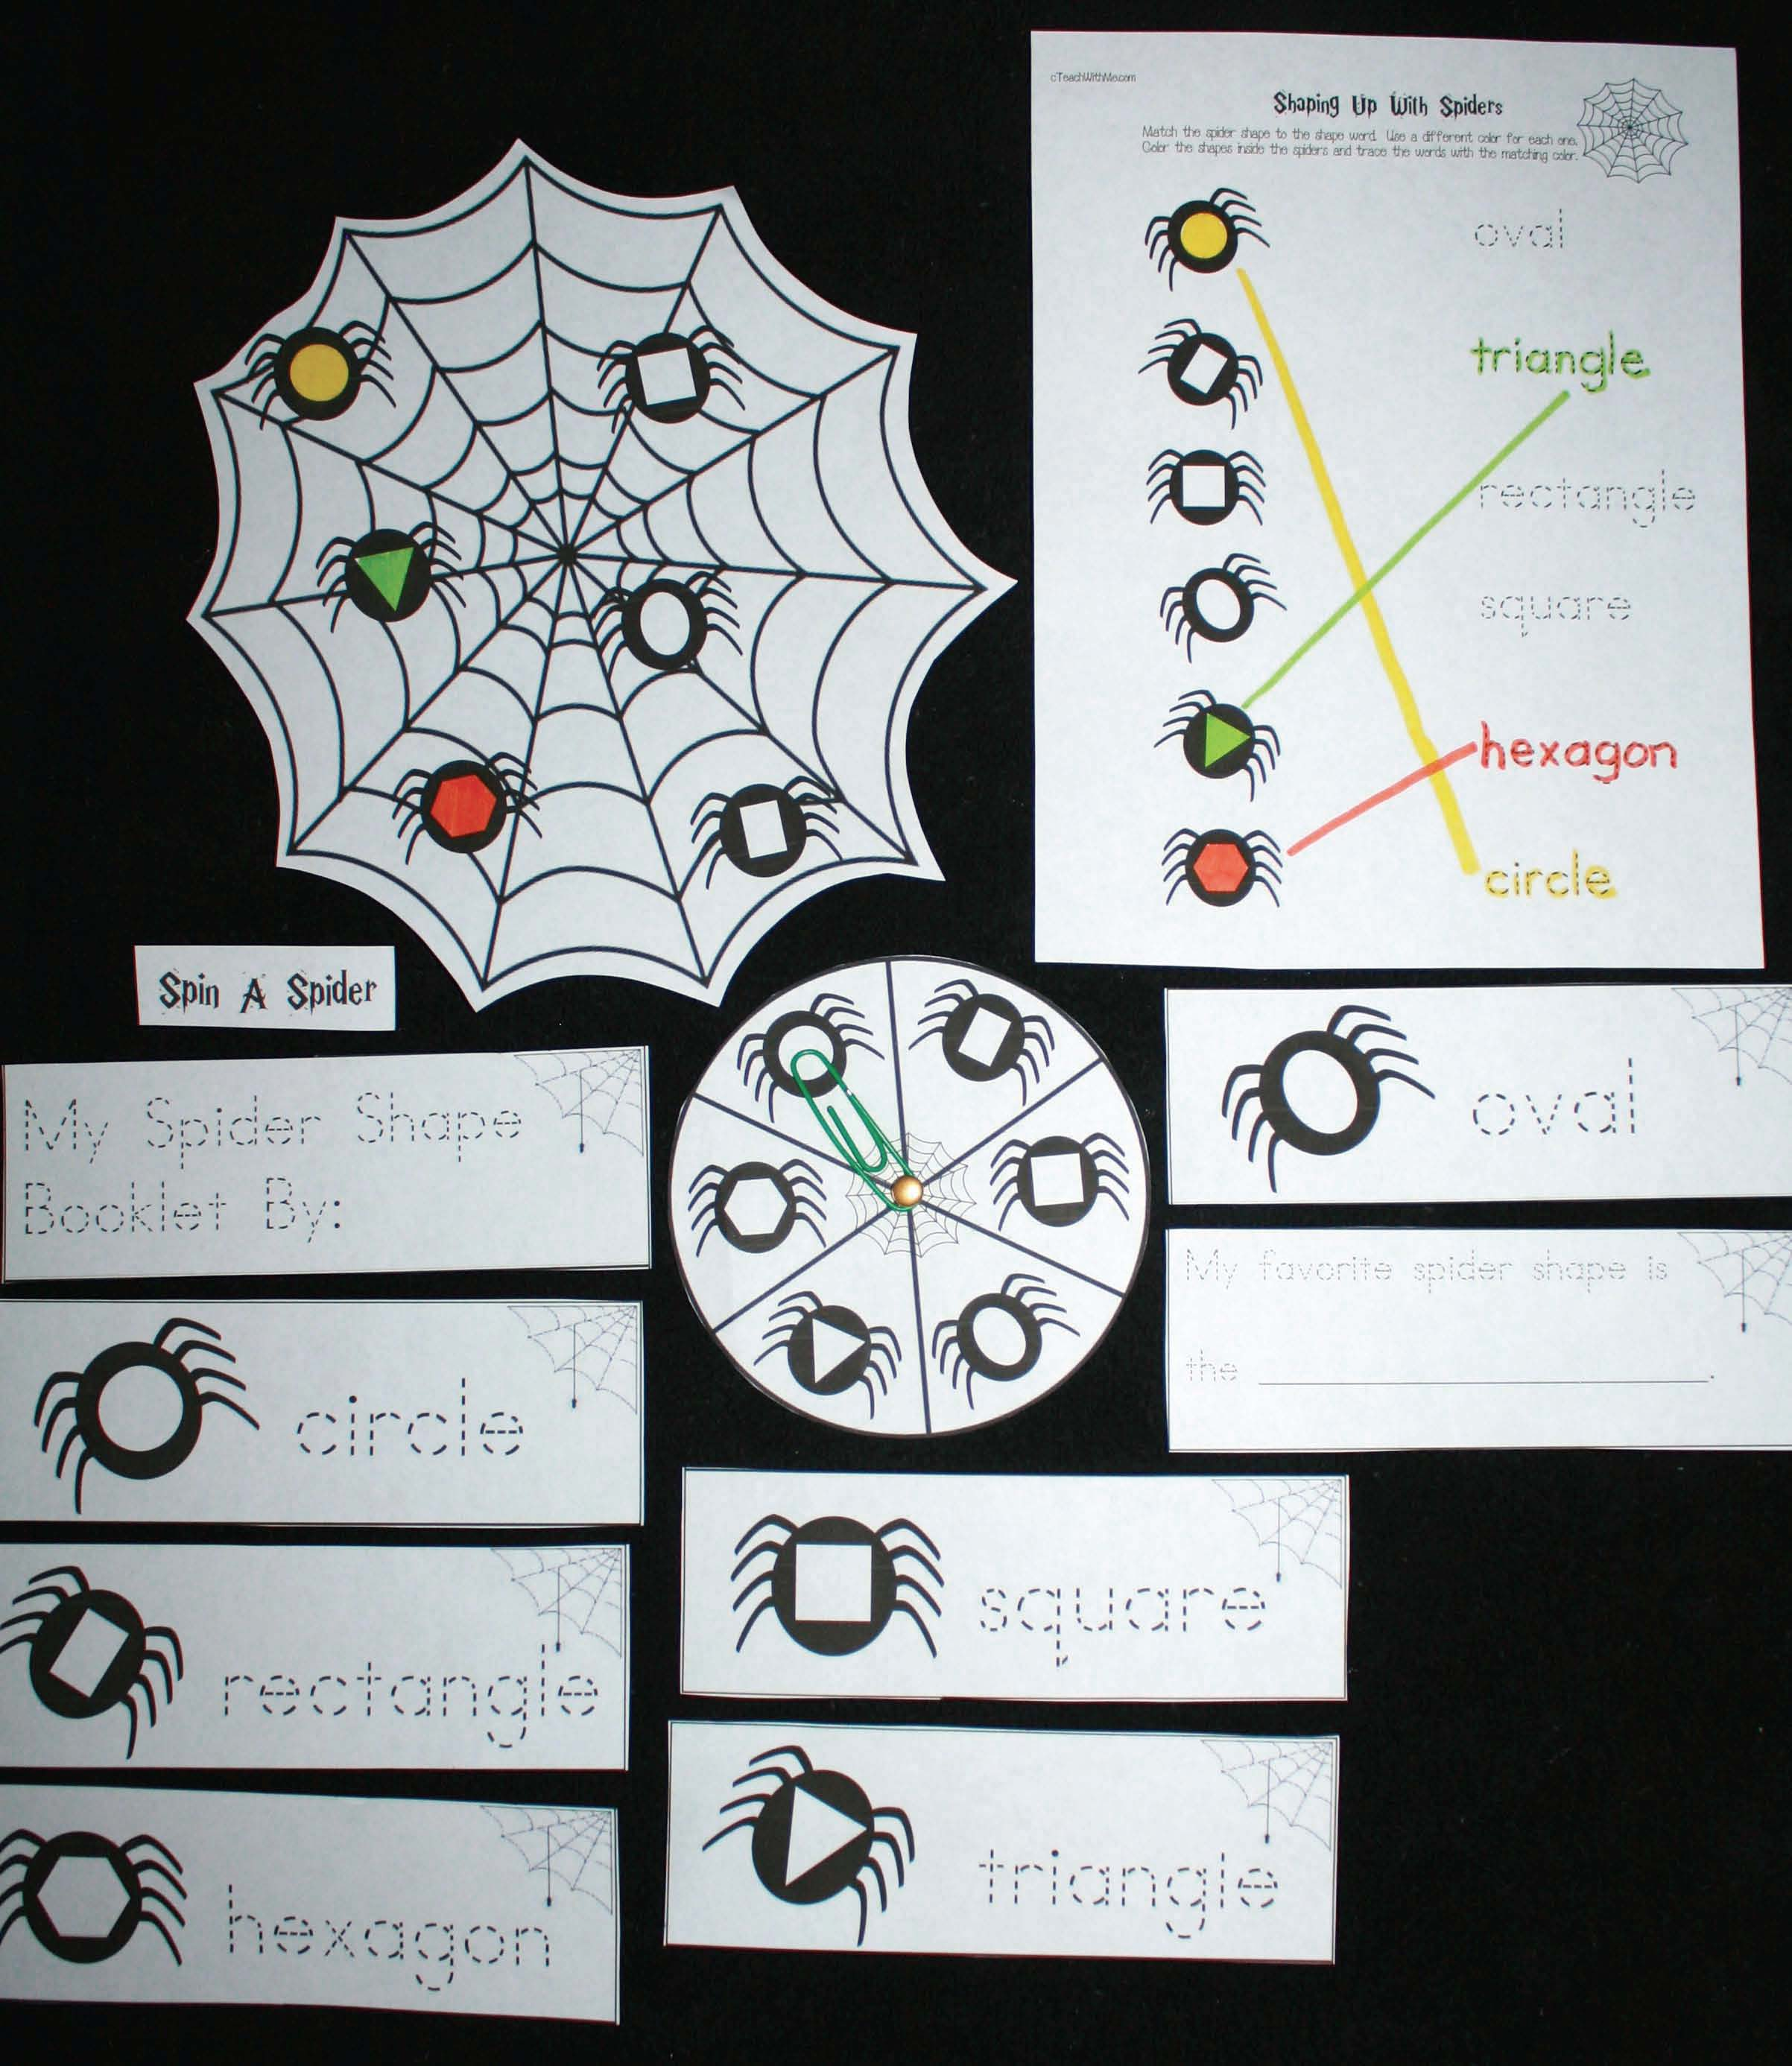 spider activities, spider lessons, common core spiders, shape activities, shape lessons, shape centers, spider centers, spider games, Daily 5 for October, Daily 5 activities for fall, spider crafts, spider arts and crafts, spider games, spider centers, math games, common core spiders, math centers,